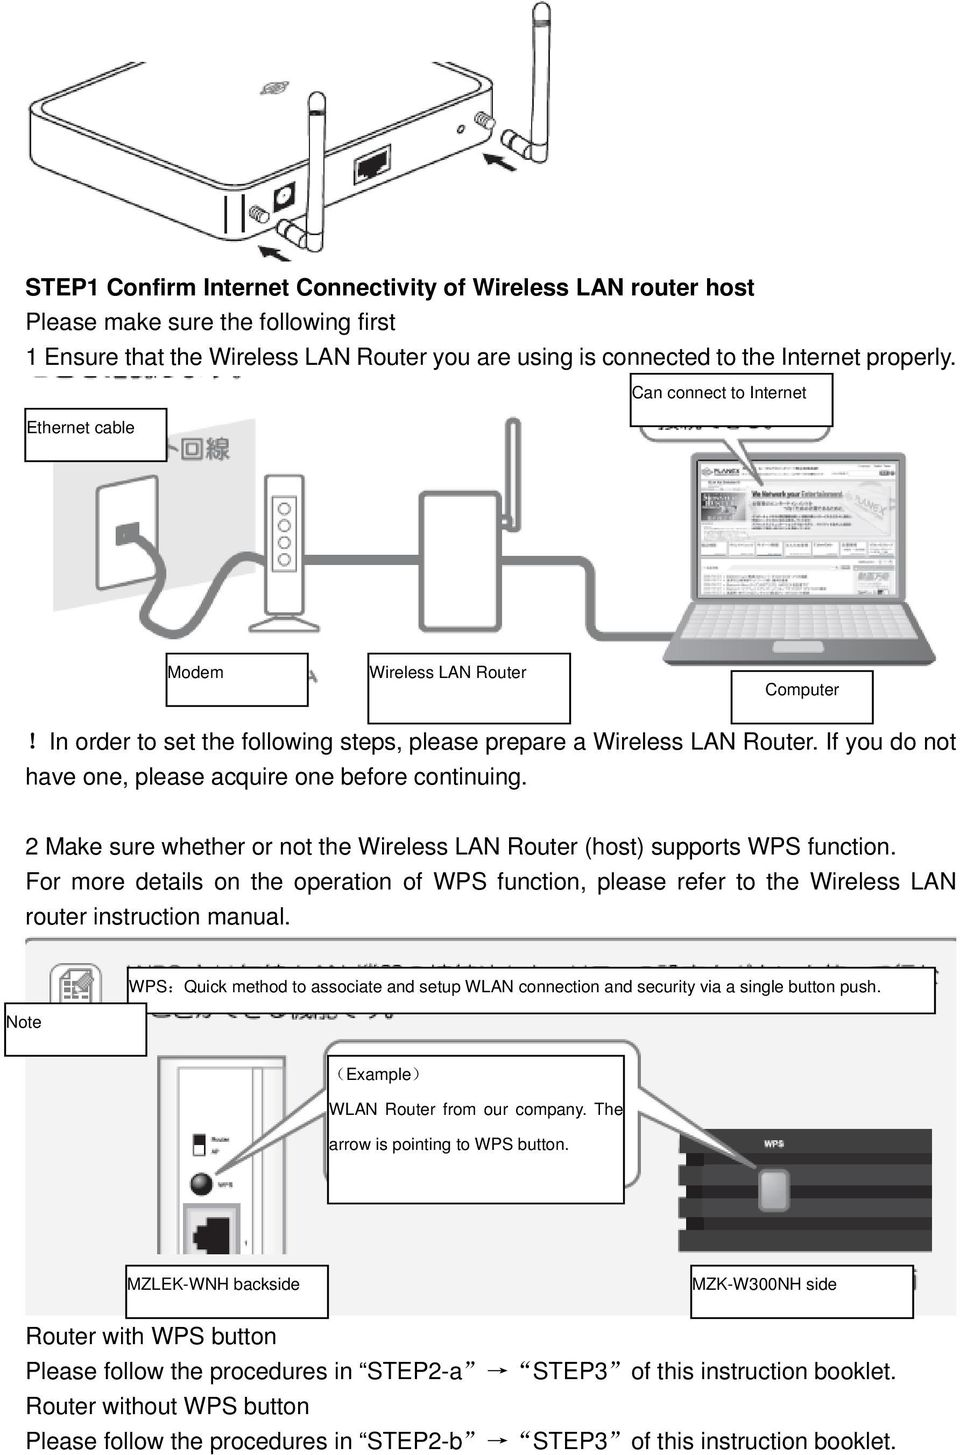 If you do not have one, please acquire one before continuing. 2 Make sure whether or not the Wireless LAN Router (host) supports WPS function.